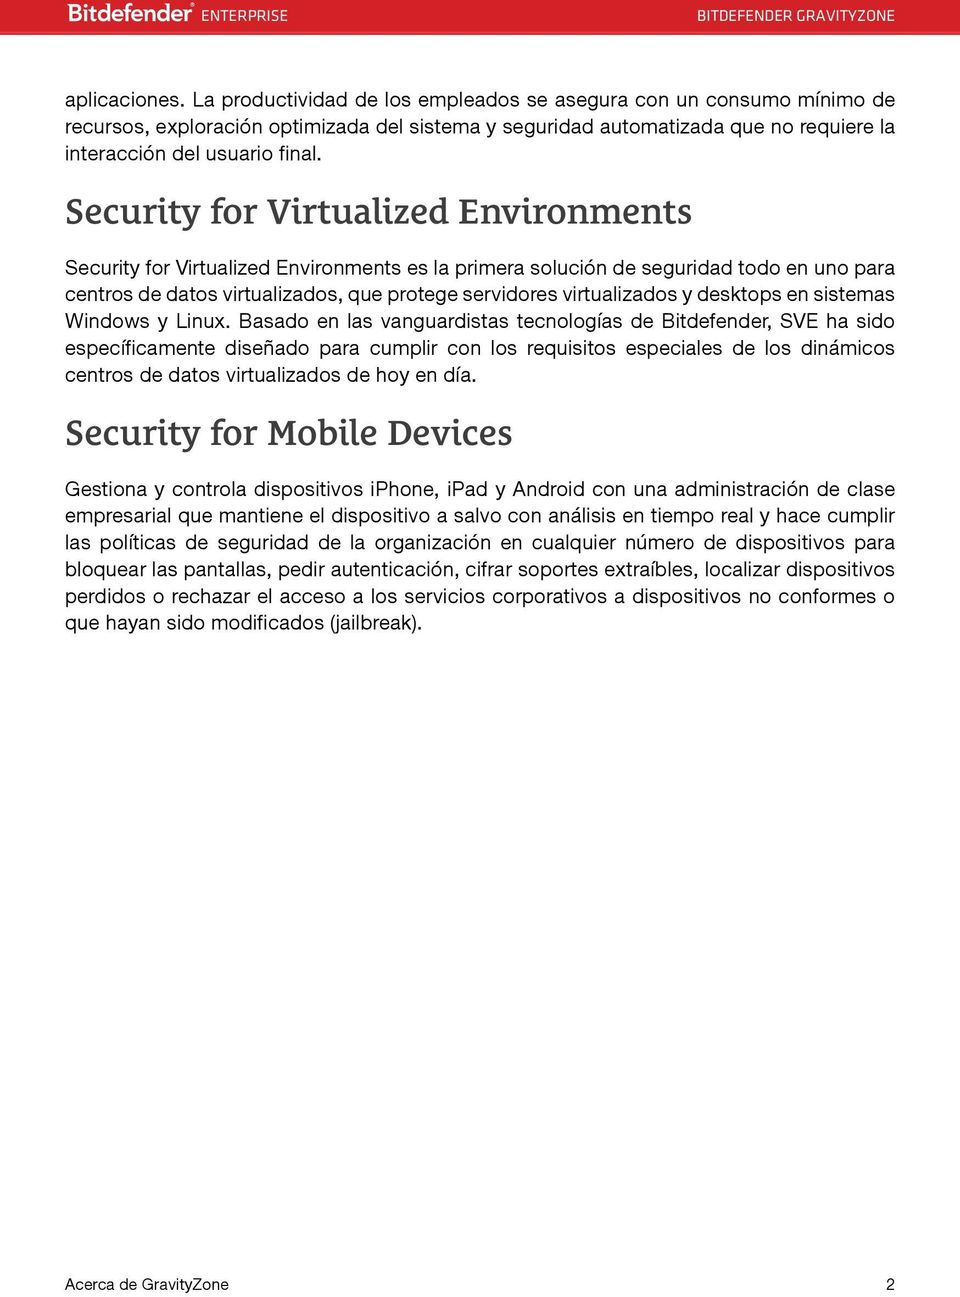 Security for Virtualized Environments Security for Virtualized Environments es la primera solución de seguridad todo en uno para centros de datos virtualizados, que protege servidores virtualizados y